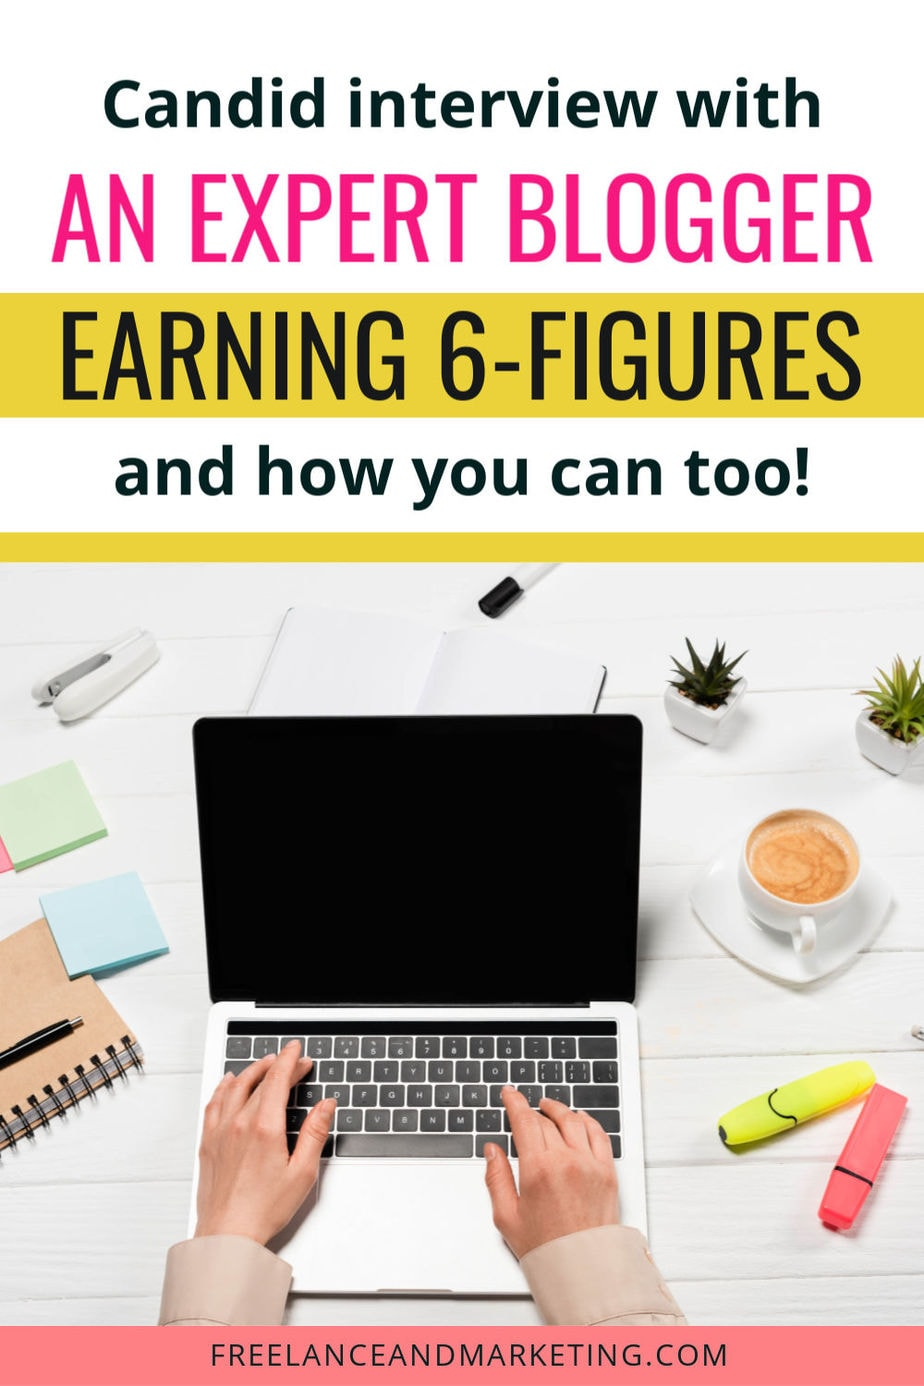 A candid and honest interview with an expert, successful blogger who earns a 6-figure income from her blog. Find out how Tracie Fobes became a blogging expert and coach, excels in affiliate marketing, in creating and selling her own products, and more. #affiliatemarketing #digitalproducts #onlinecourses #expertblogger #successfulblogger #6figureincome #6figurebusiness #bloggingcoach